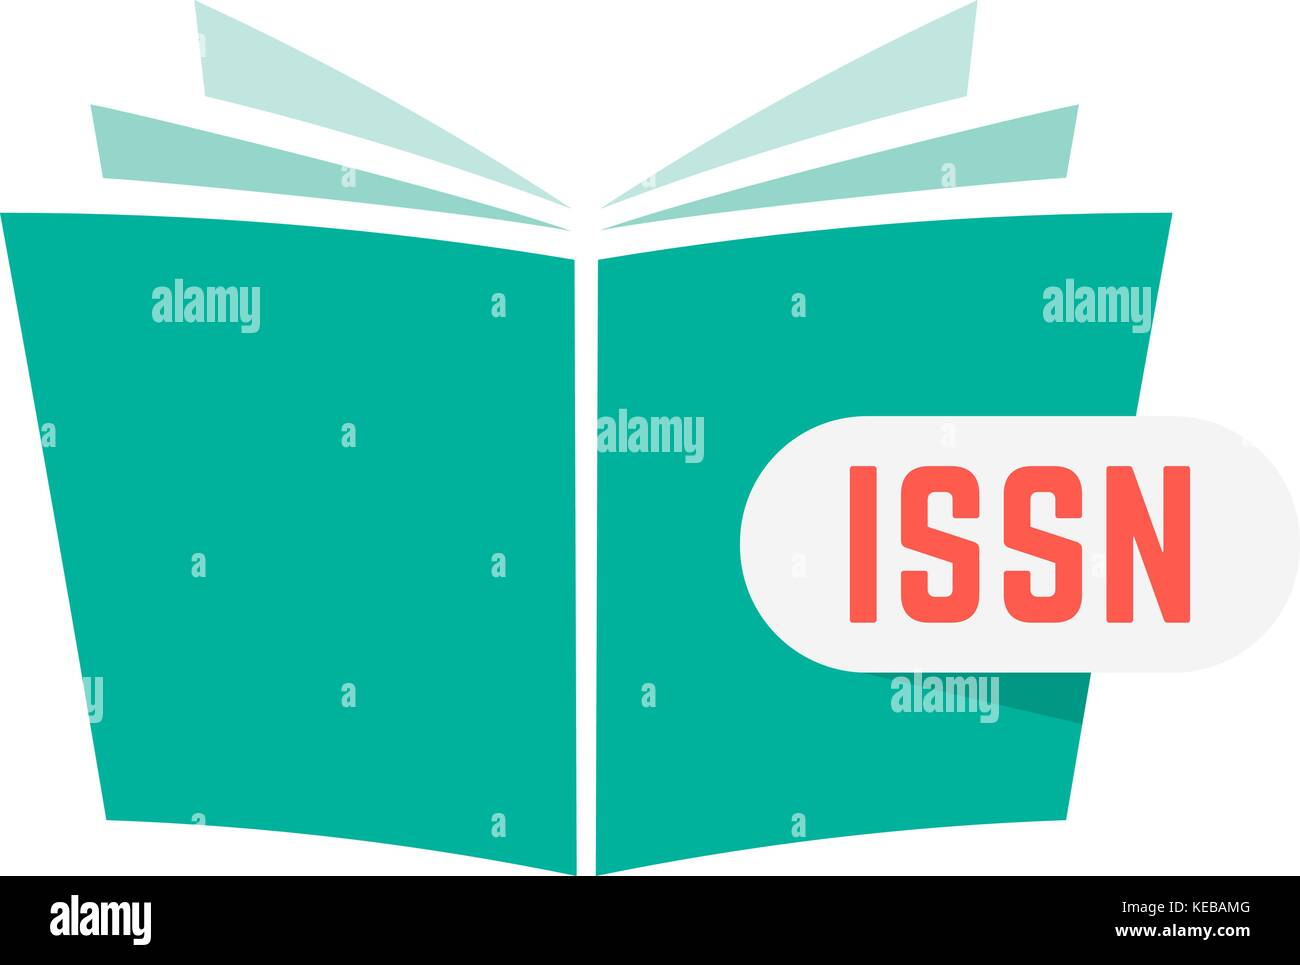 issn sign with green book - Stock Image